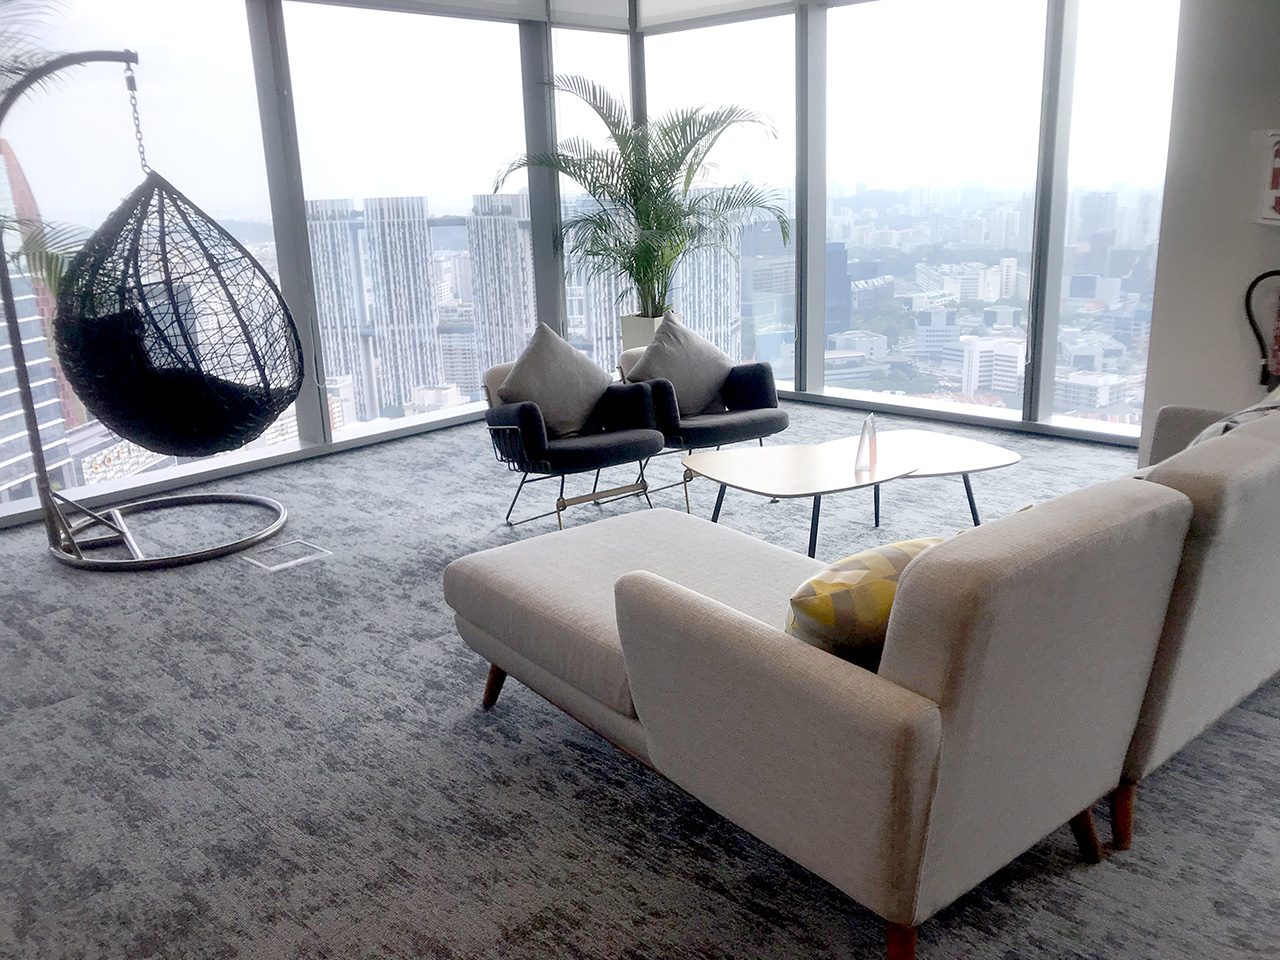 Uber - Frasers Towers | Product Seen: [Marina Swing, Uta 1 Seater Lounger & Ridge Coffee Table]